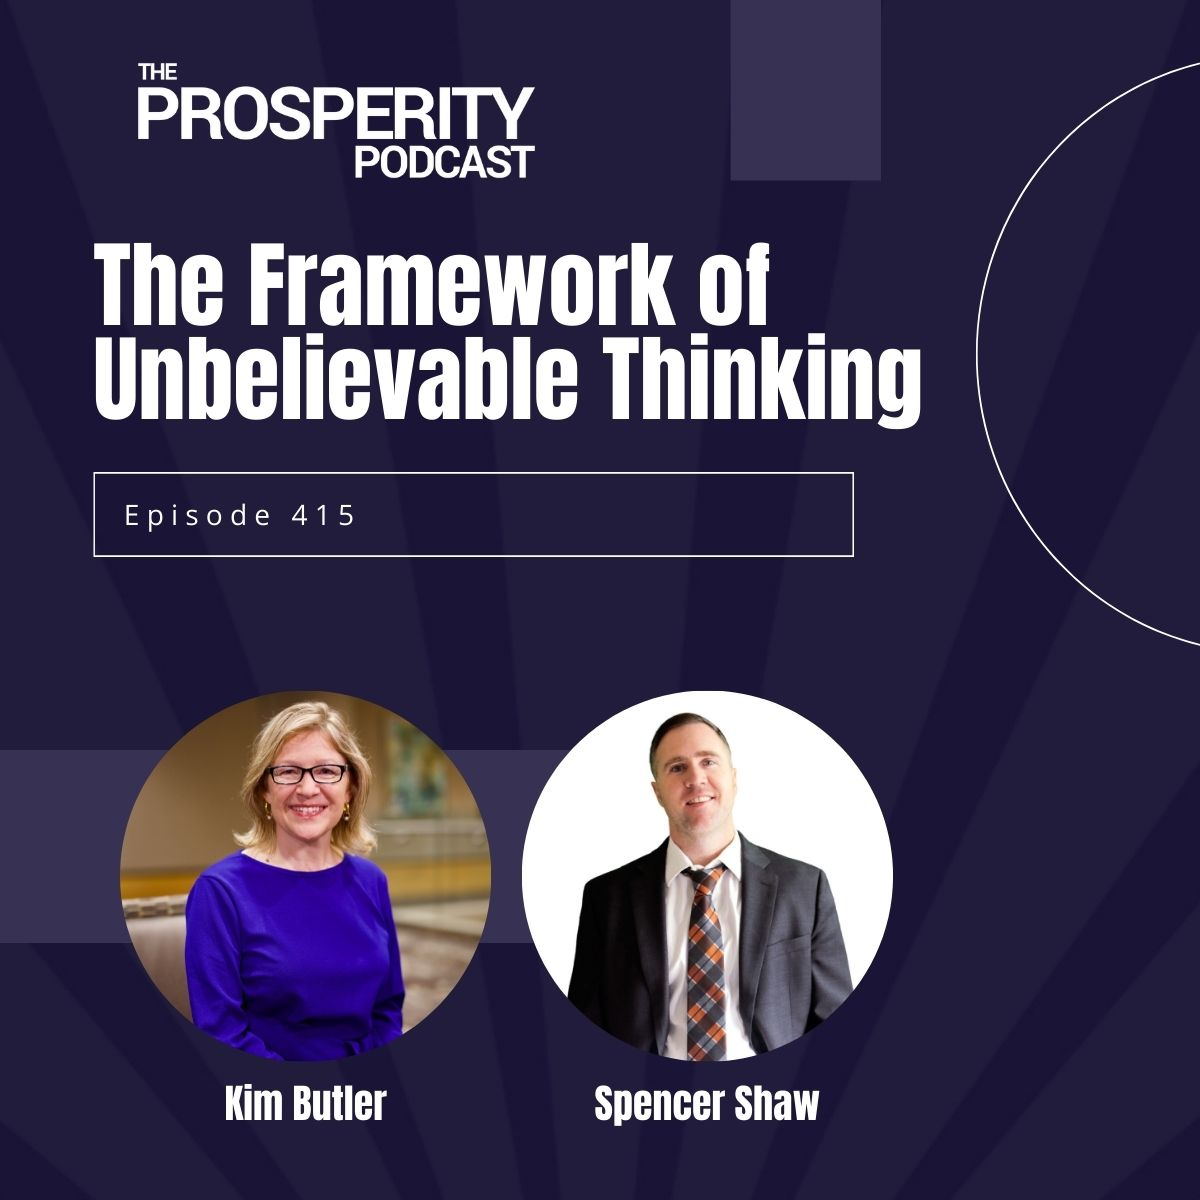 The Framework of Unbelievable Thinking